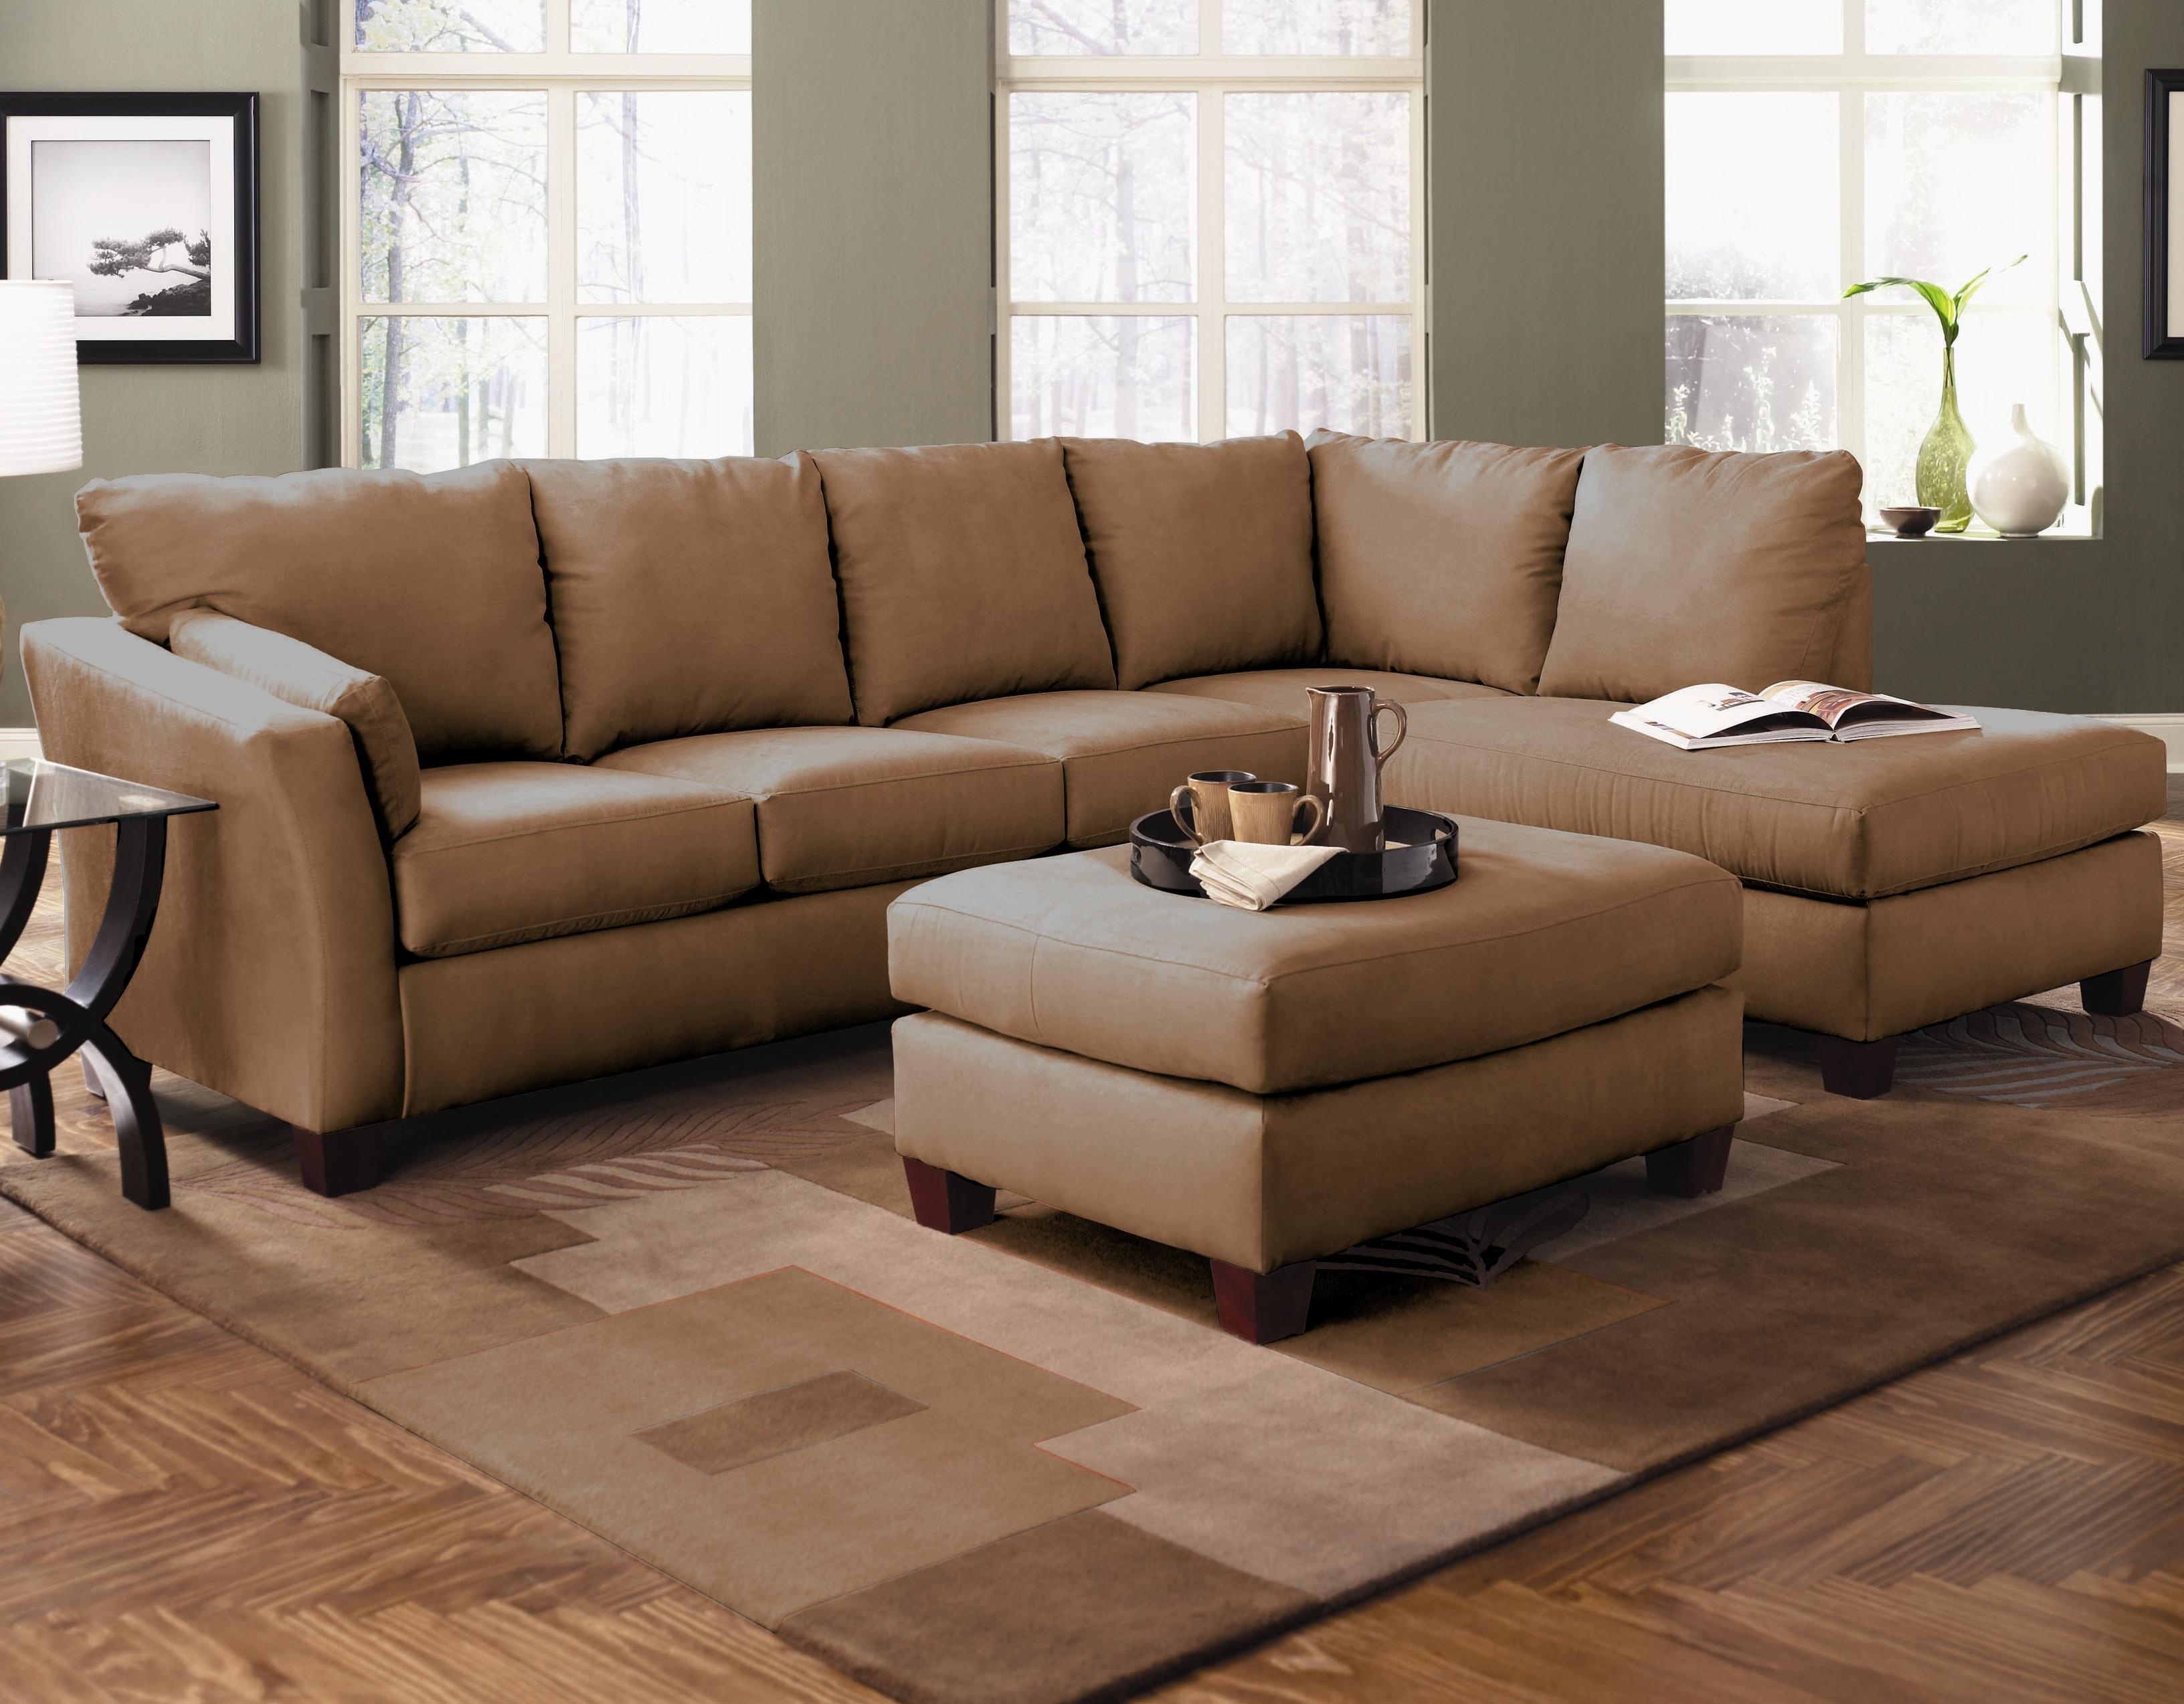 Popular Value City Sectional Sofa Within Sofas Furniture Sectionals Plan Pertaining To Value City Sectional Sofas (View 8 of 15)